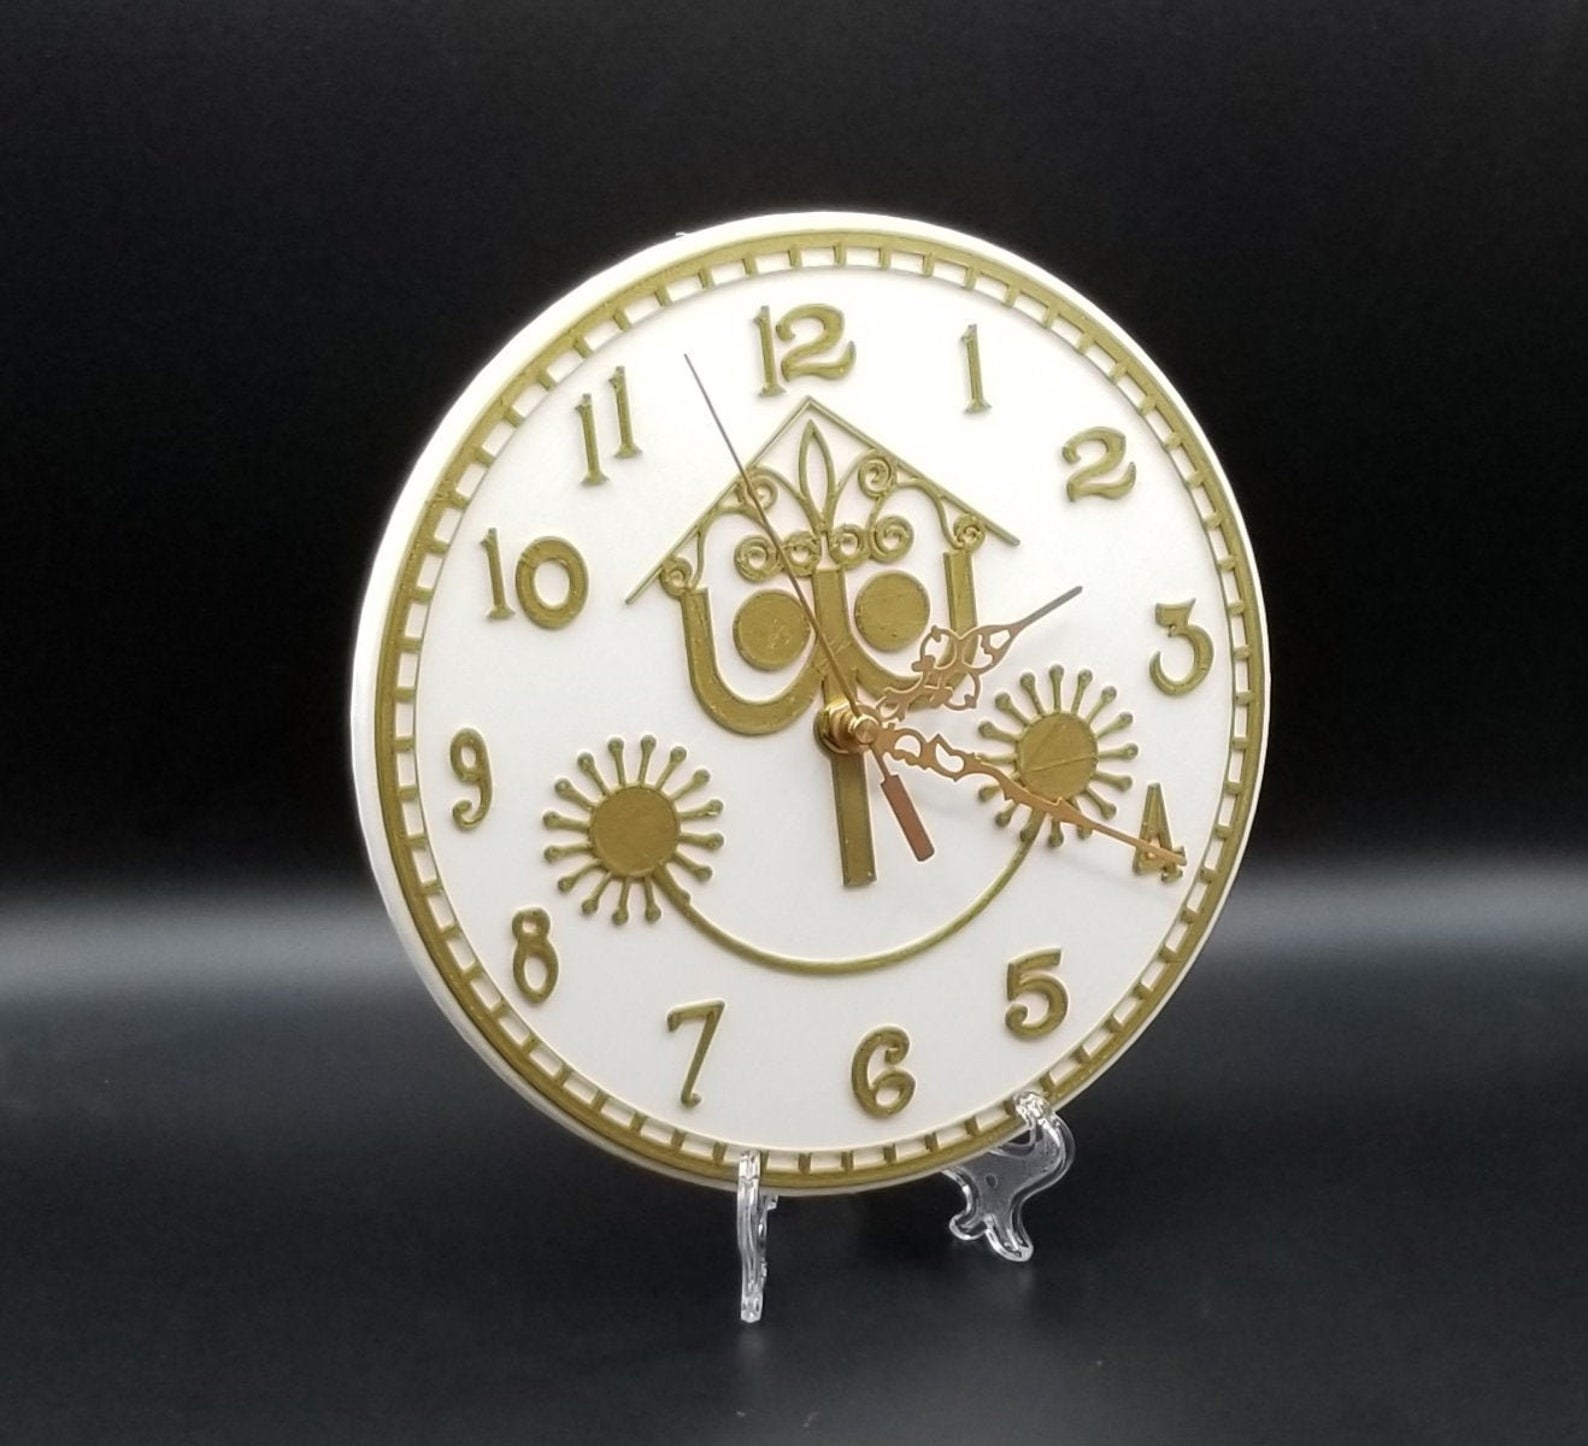 a white and gold clock that looks like the one from it's a small world